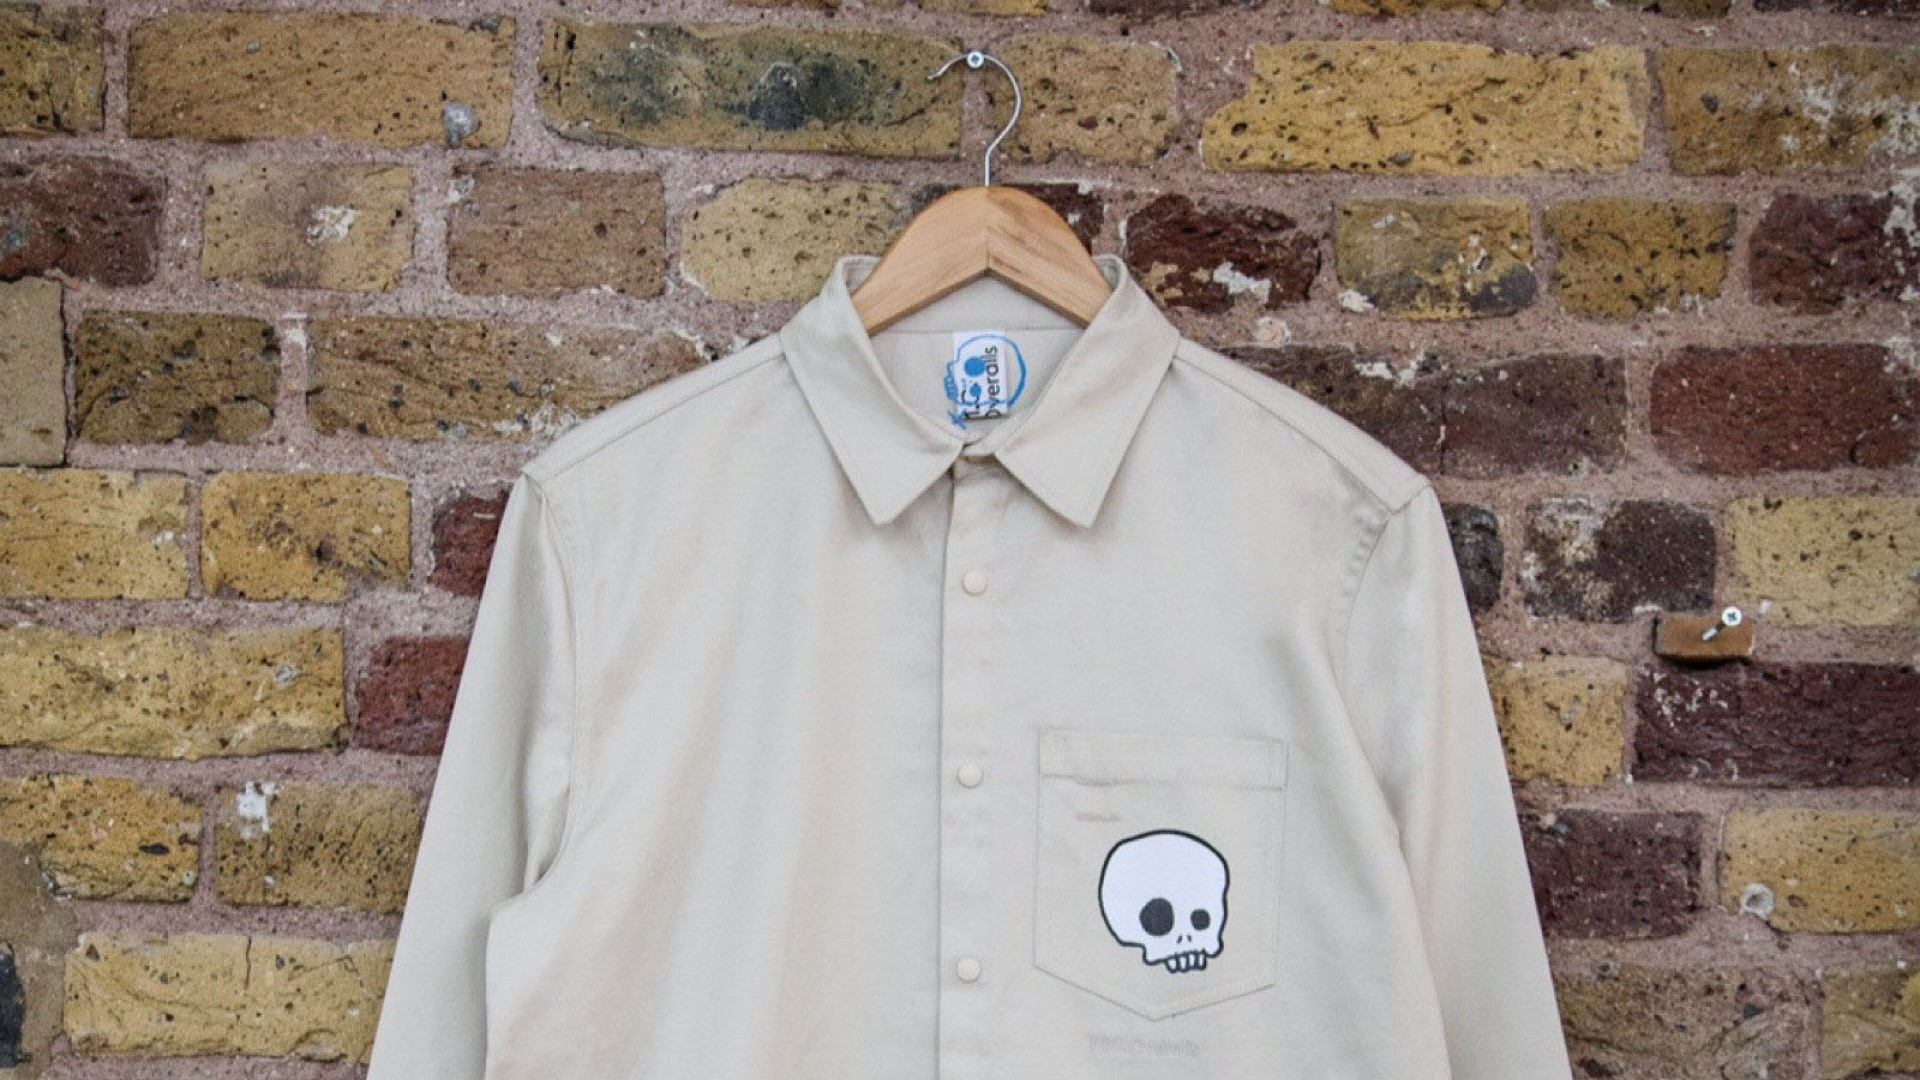 Beavertown x M.C. Overalls oatmeal polycotton skull snap shirt